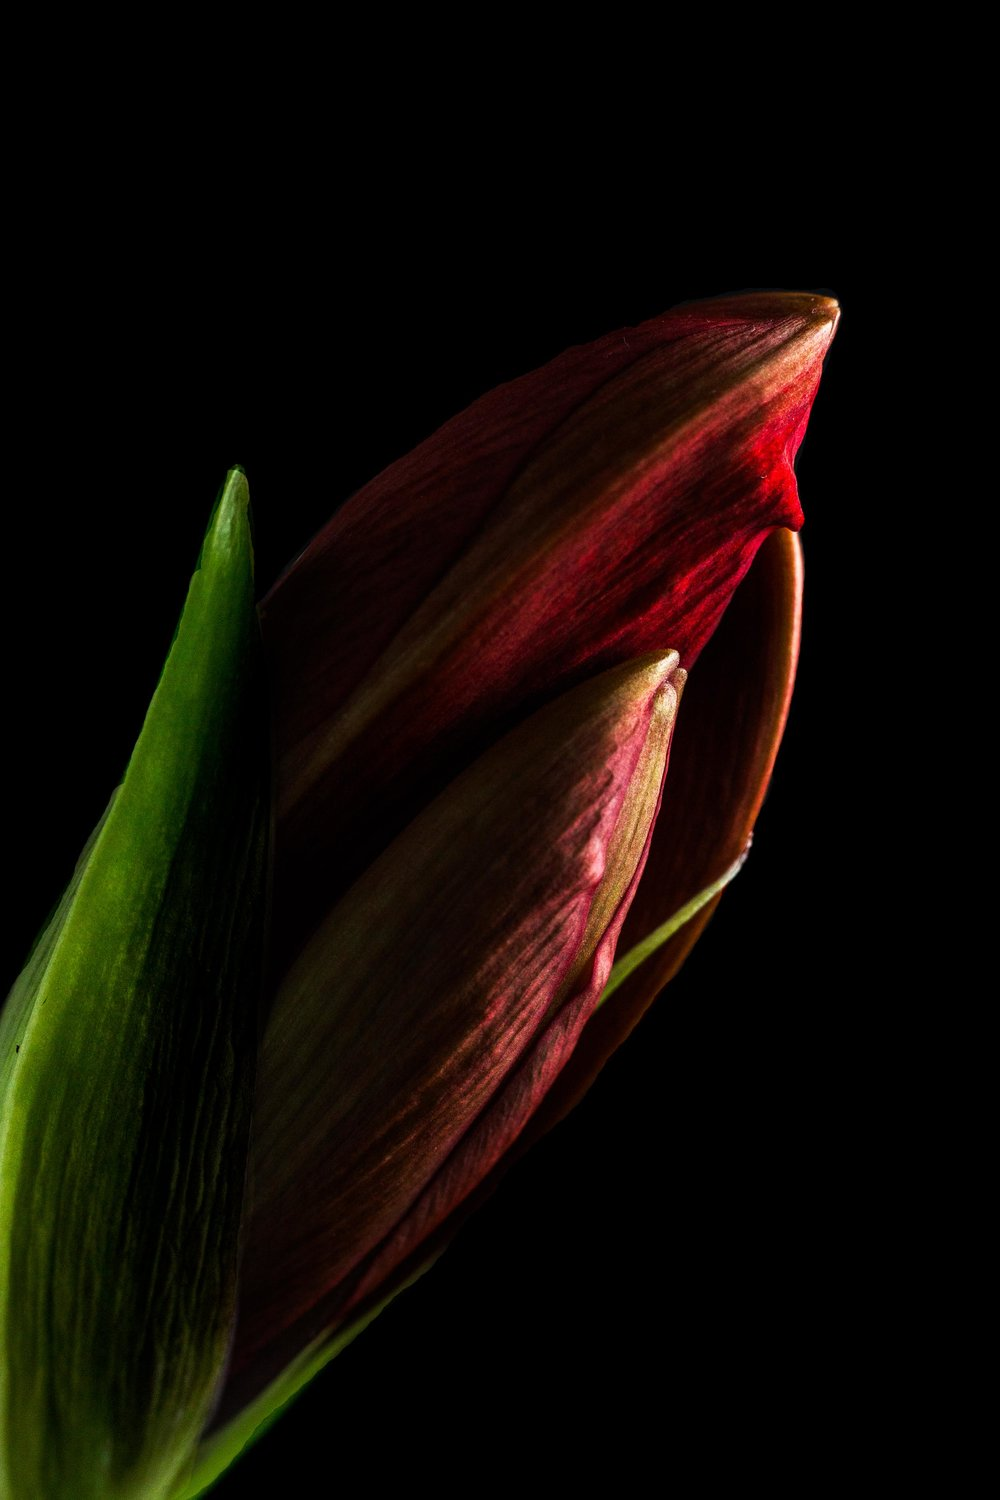 Amaryllis on black background